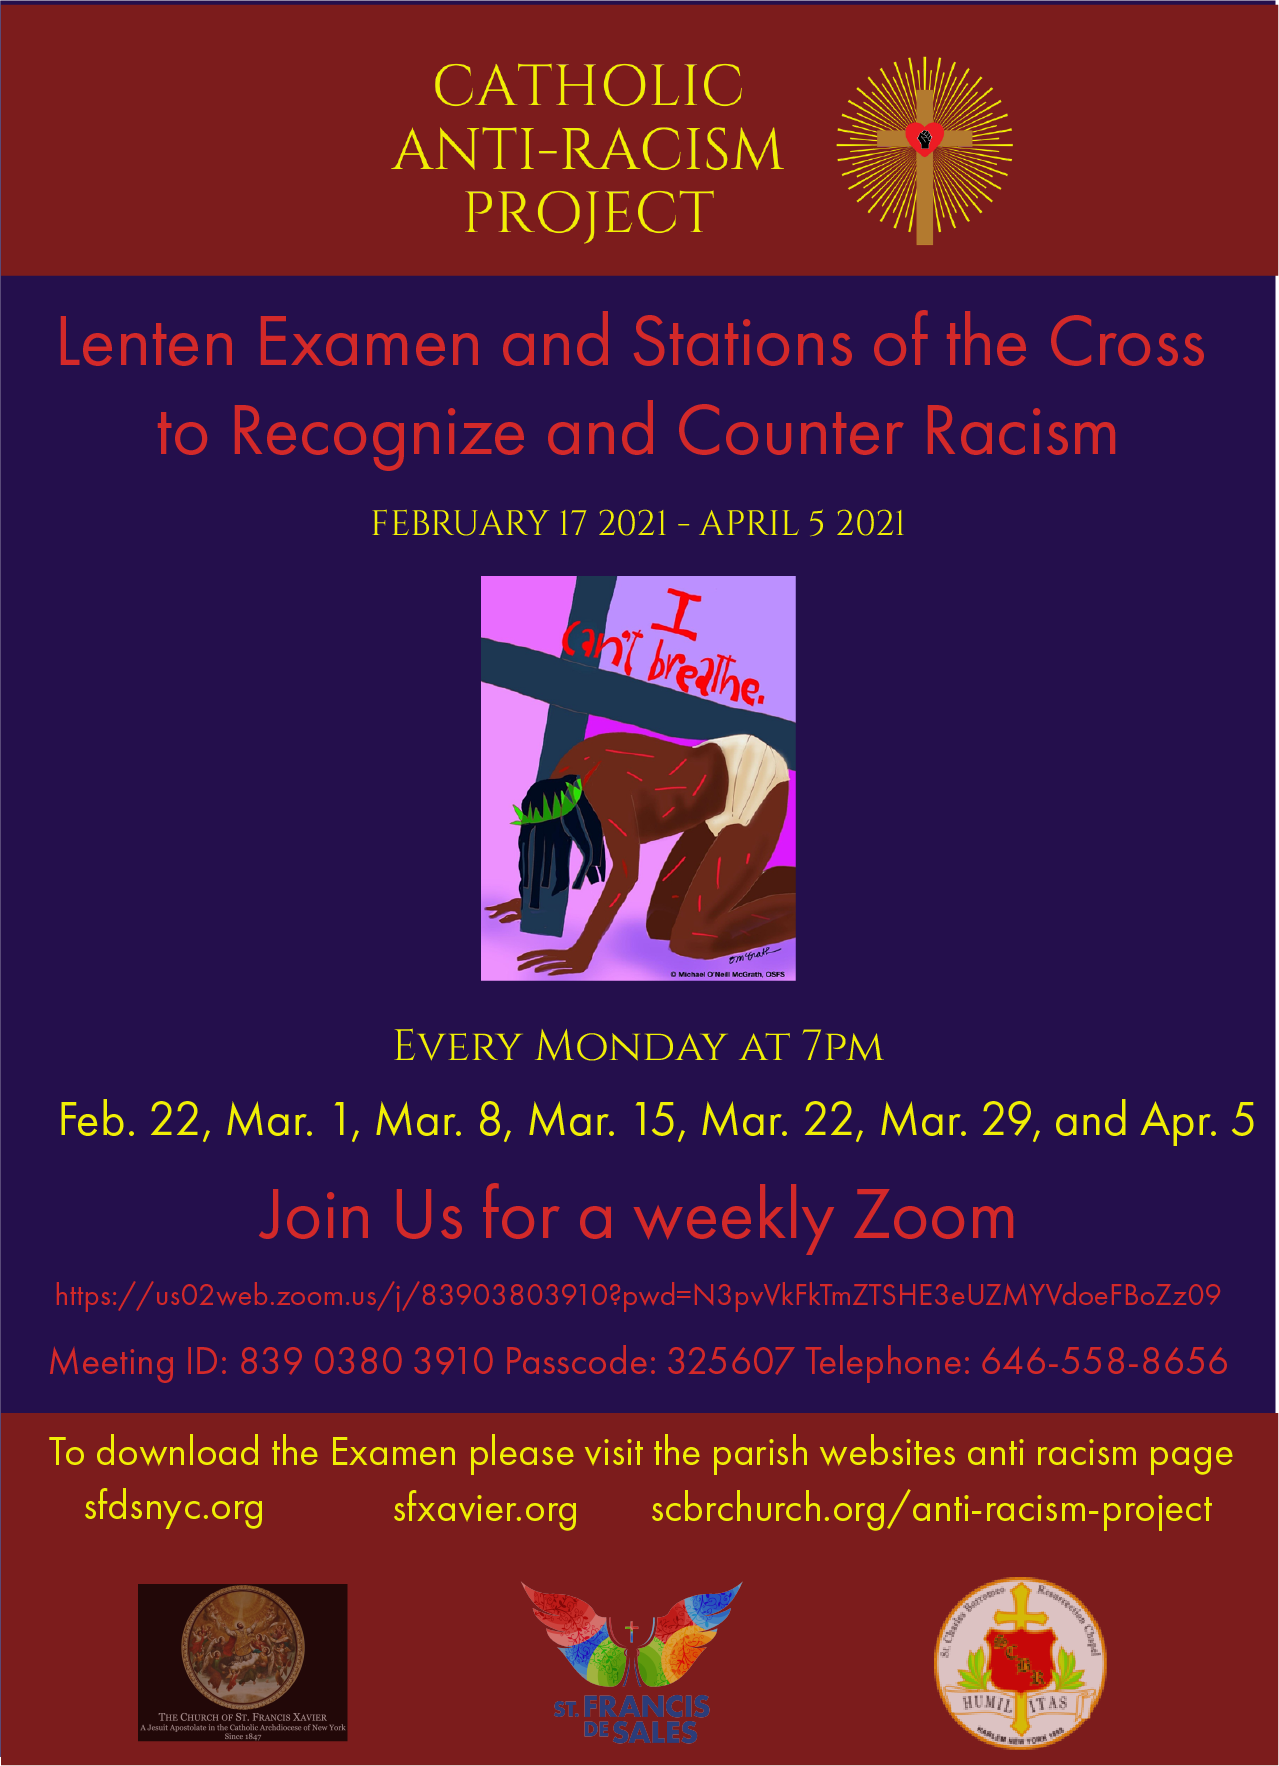 Lenten Examen and Stations of the Cross to Recognize and Counter Racism